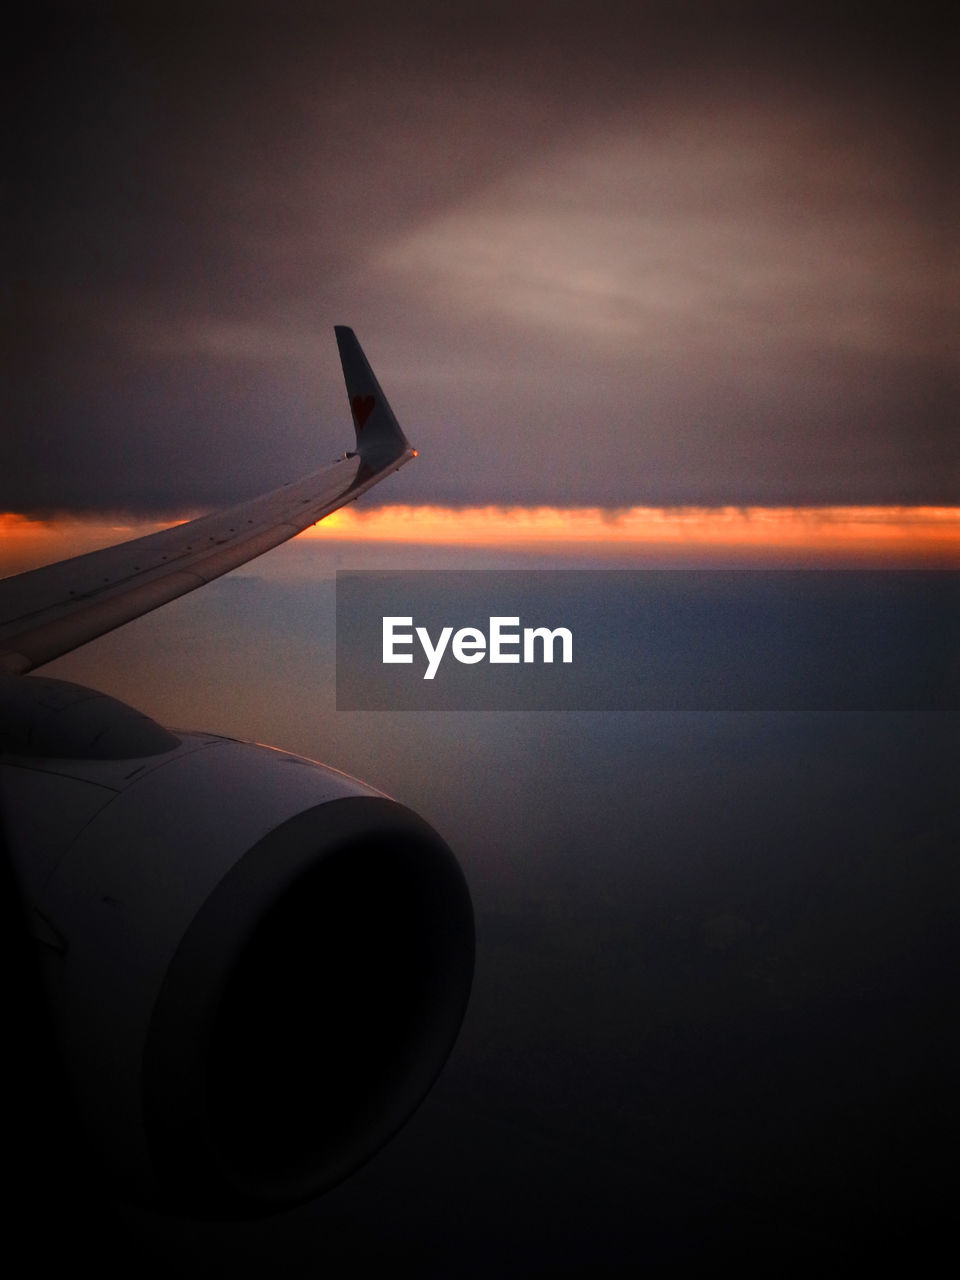 airplane, transportation, journey, sunset, aerial view, sky, air vehicle, flying, aircraft wing, nature, travel, mode of transport, airplane wing, scenics, cloud - sky, mid-air, no people, jet engine, beauty in nature, tranquil scene, sea, tranquility, outdoors, landscape, horizon over water, water, close-up, day